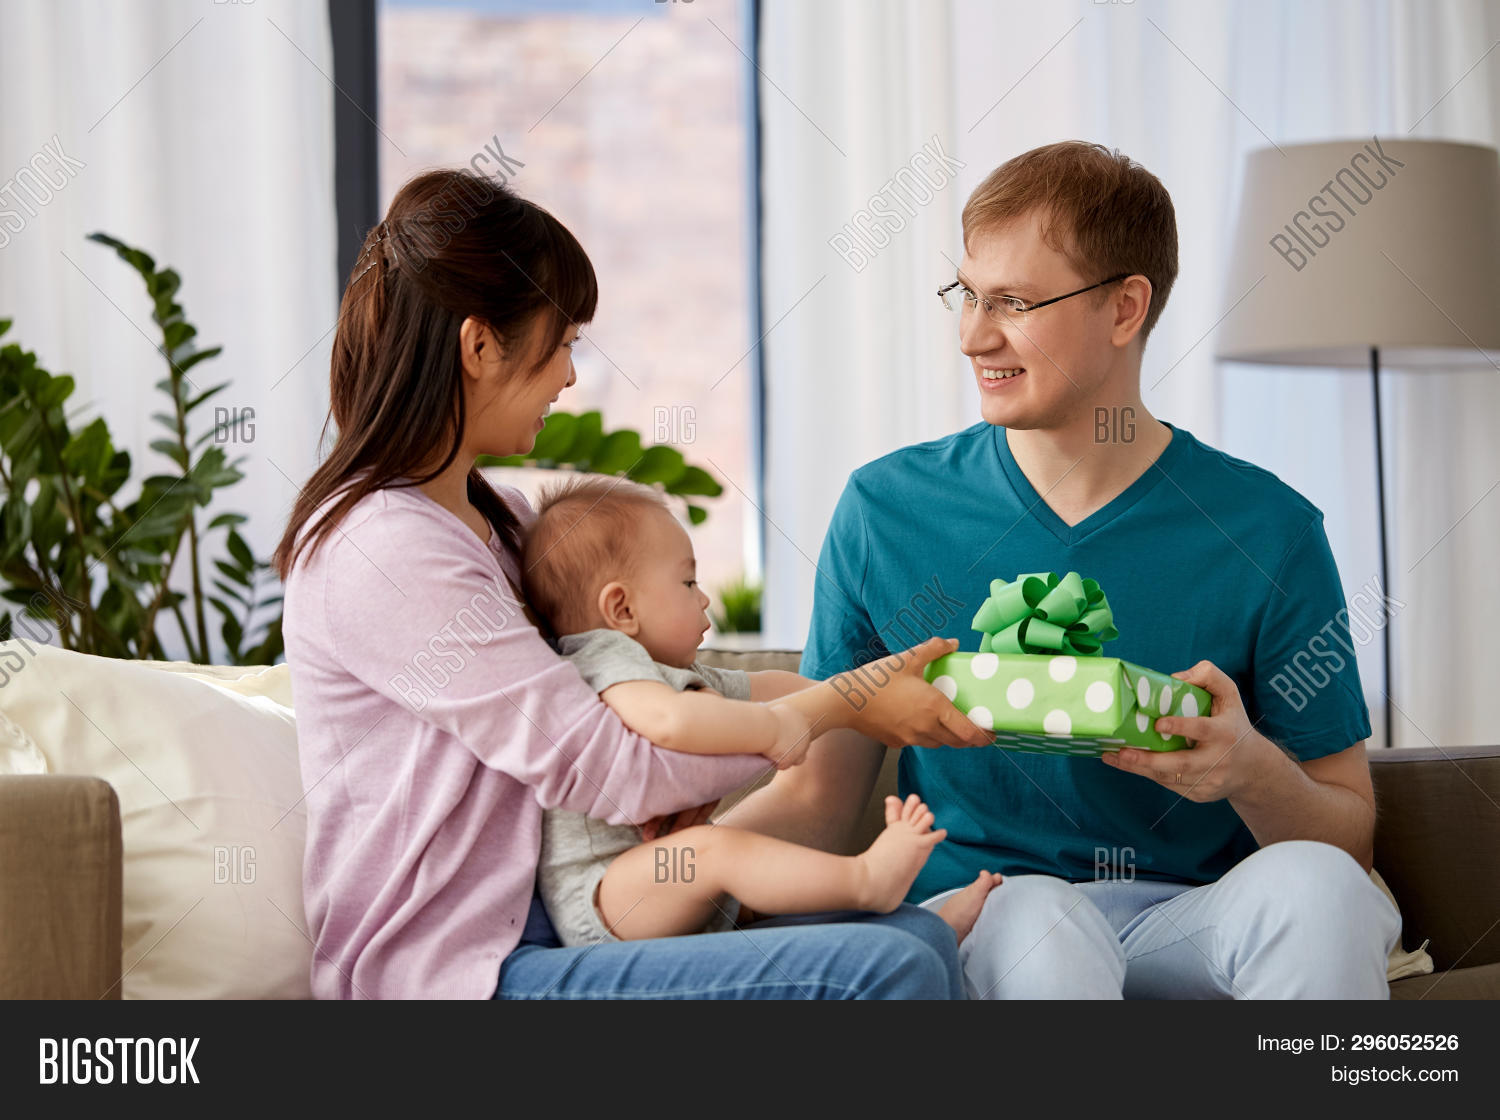 Mixed Race Family Parenthood And Fathers Day Concept